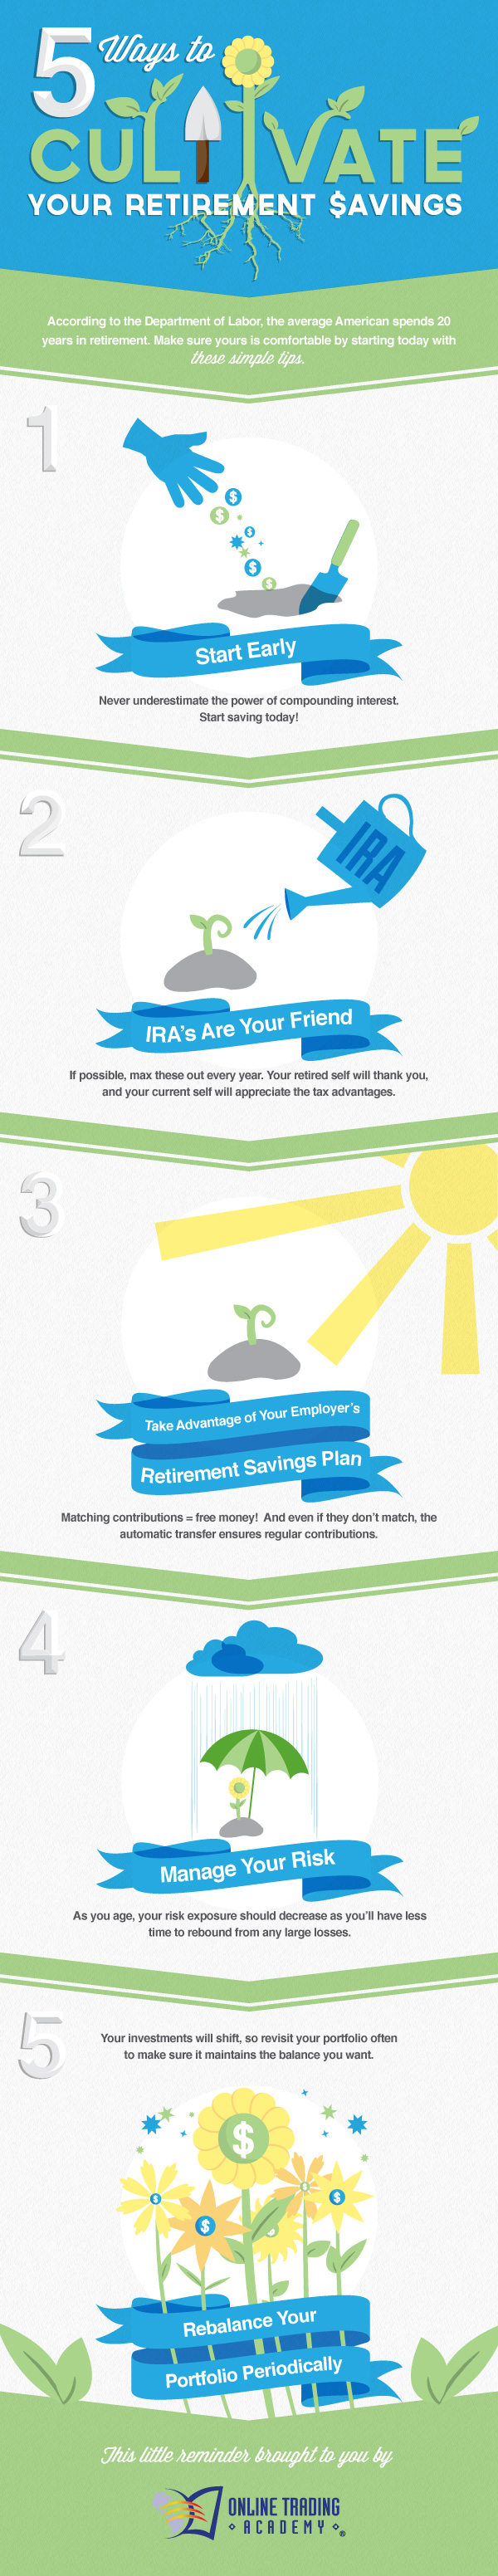 Saving for Your Retirement – 5 easy and effective steps you can take to build your nest egg